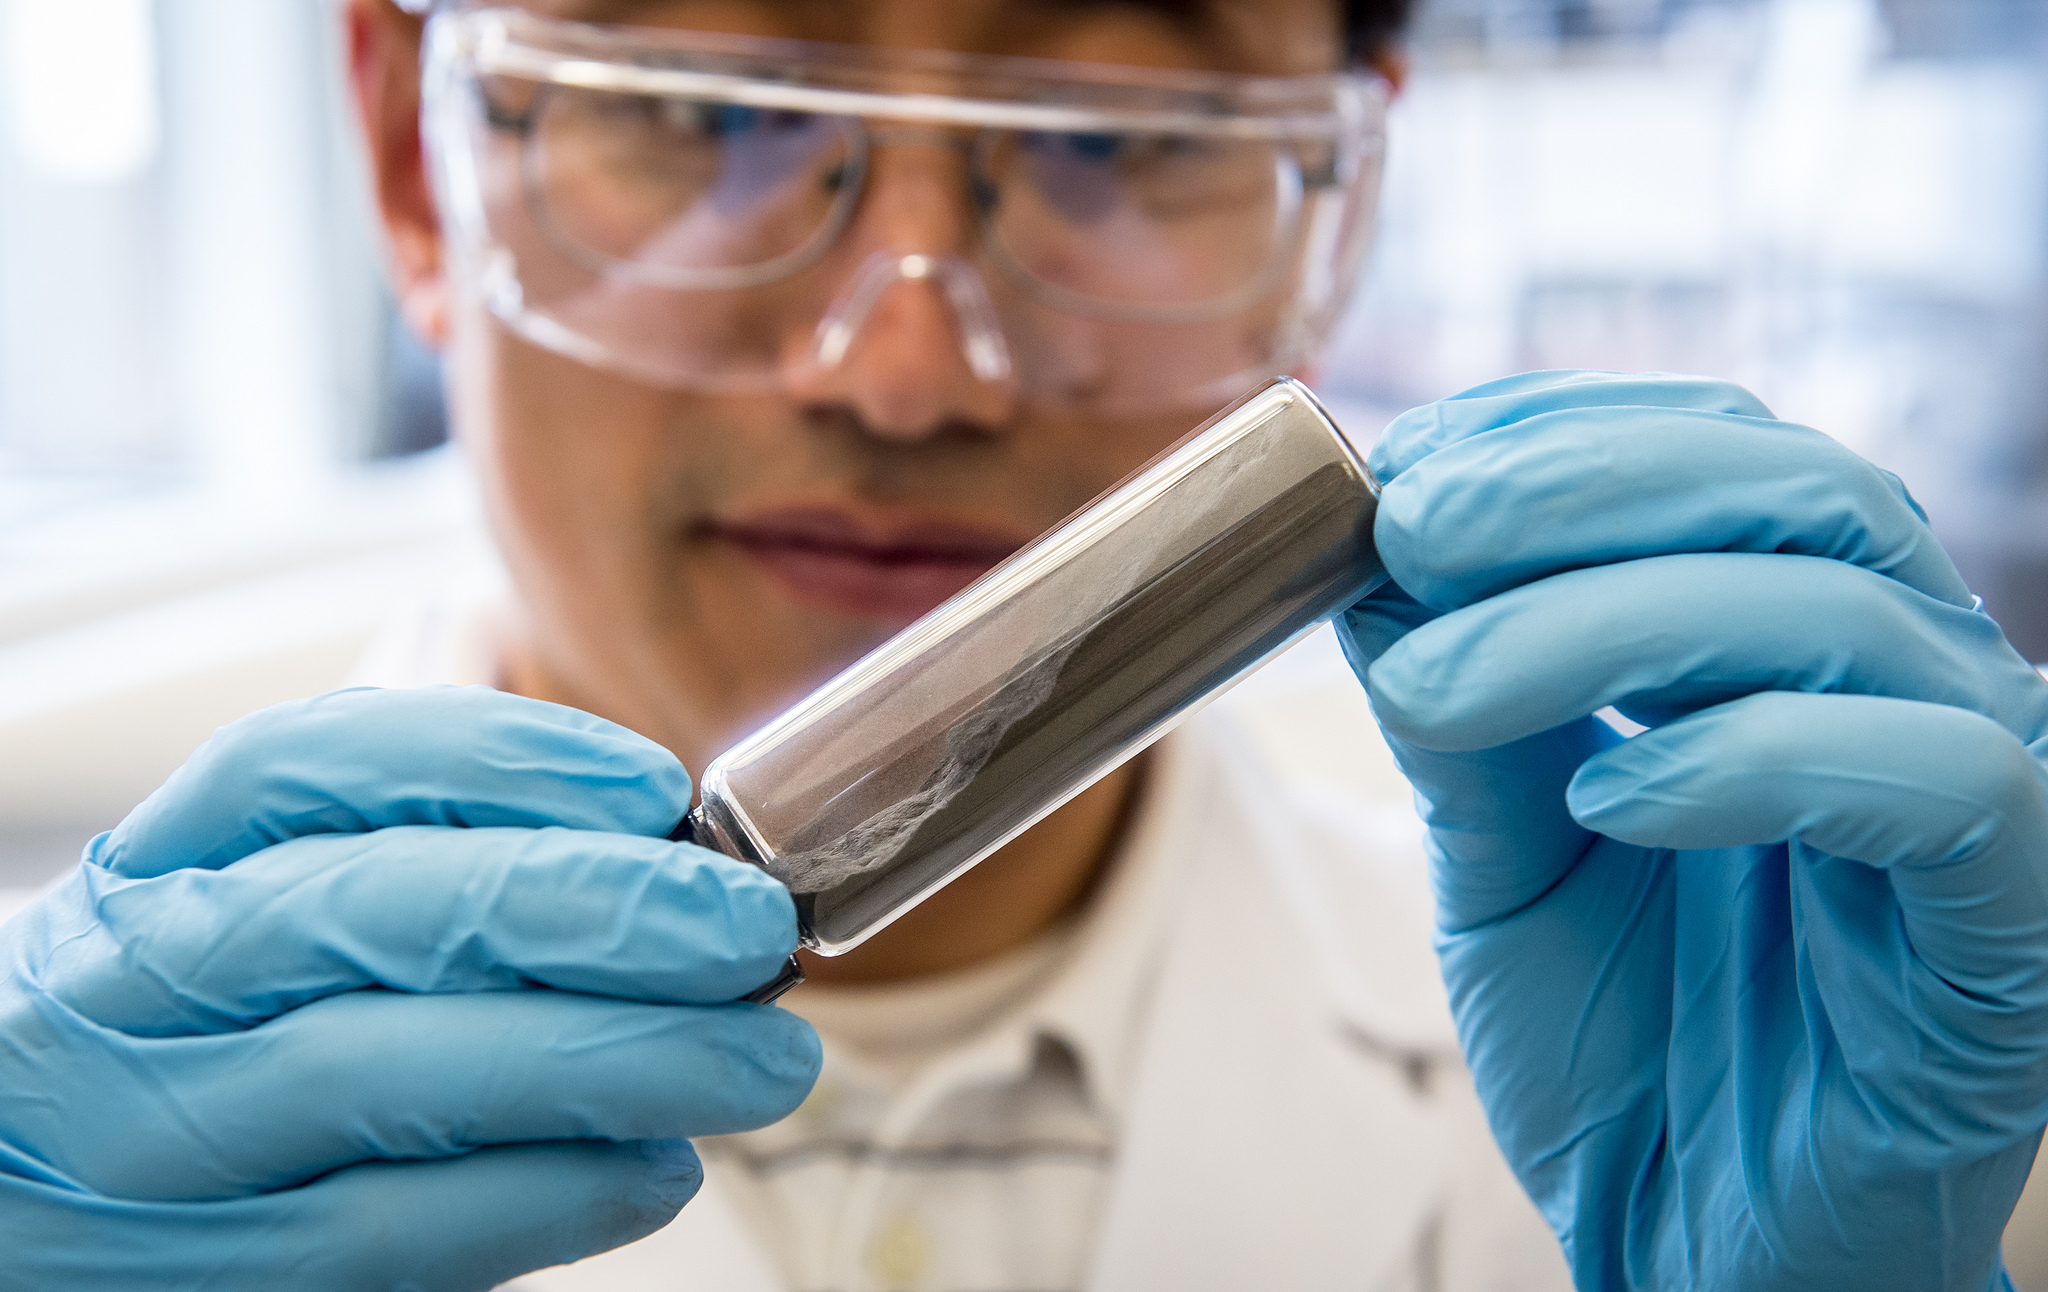 Researchers have discovered how to overcome technical challenges that hindered use of Stabilized Lithium Metal Powder (SLMP®) in commercial applications by devising a way to incorporate a safe form of the lithium powder into any type of Li-ion battery, including those used for electric vehicles, enabling greater energy density, extended cycle-life and reduced manufacturing costs.